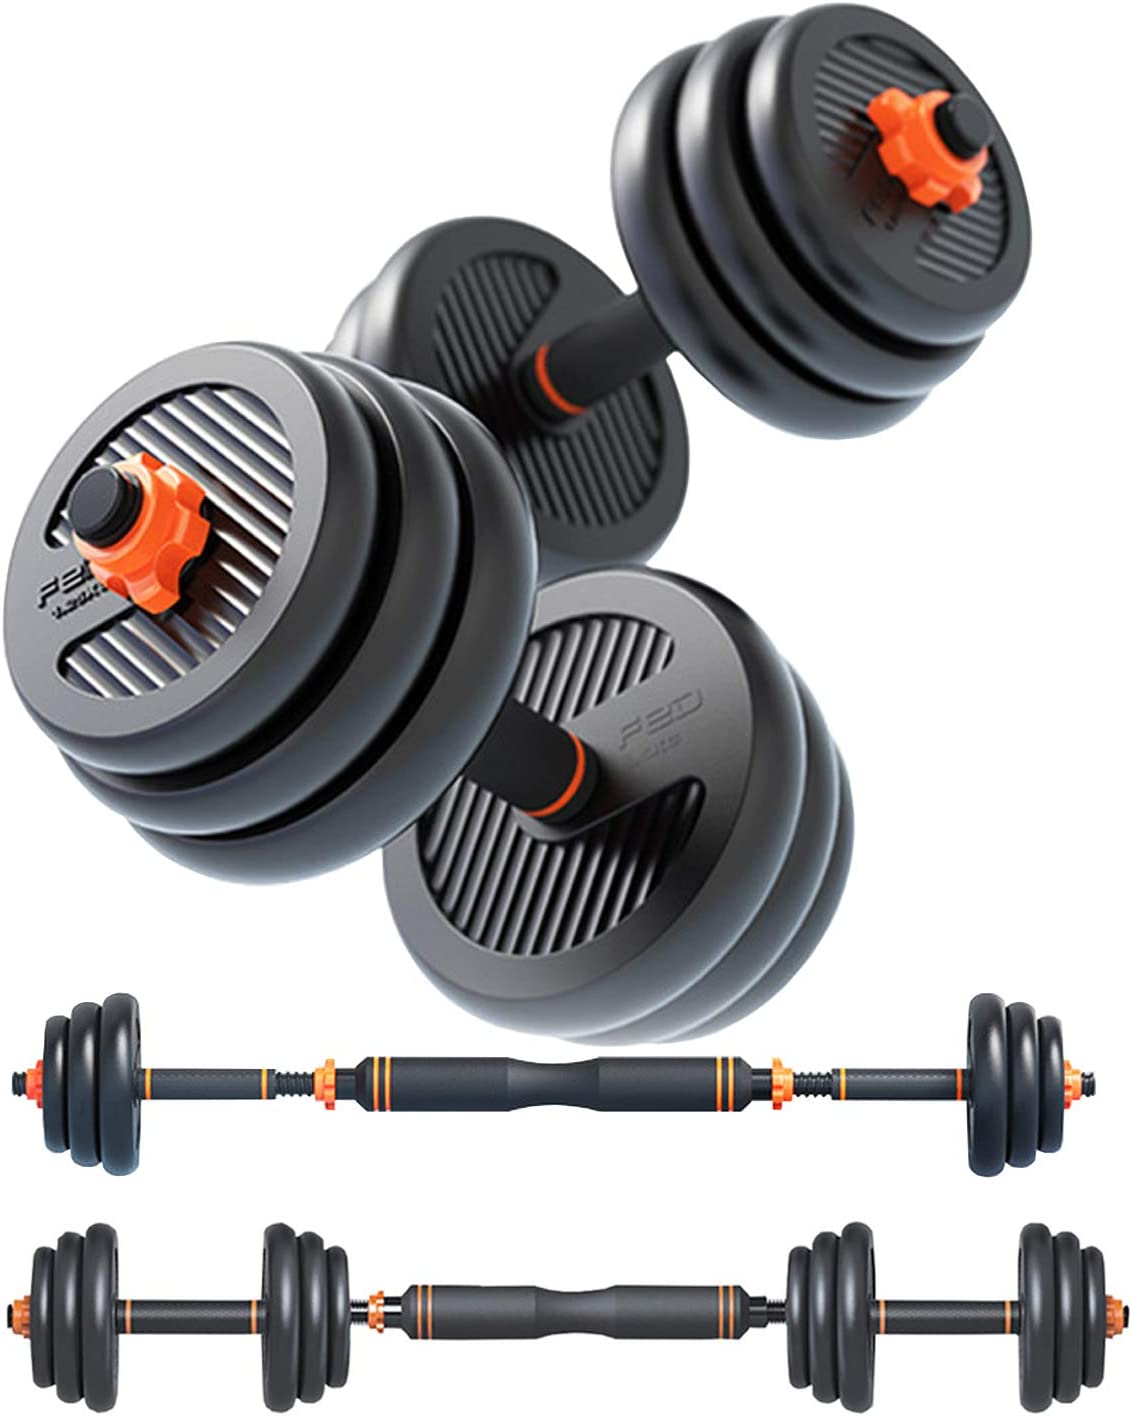 FEIERDUN 67% OFF of fixed price Free Dumbbells Max 64% OFF Weights Set Adjustable Workout Barbell E